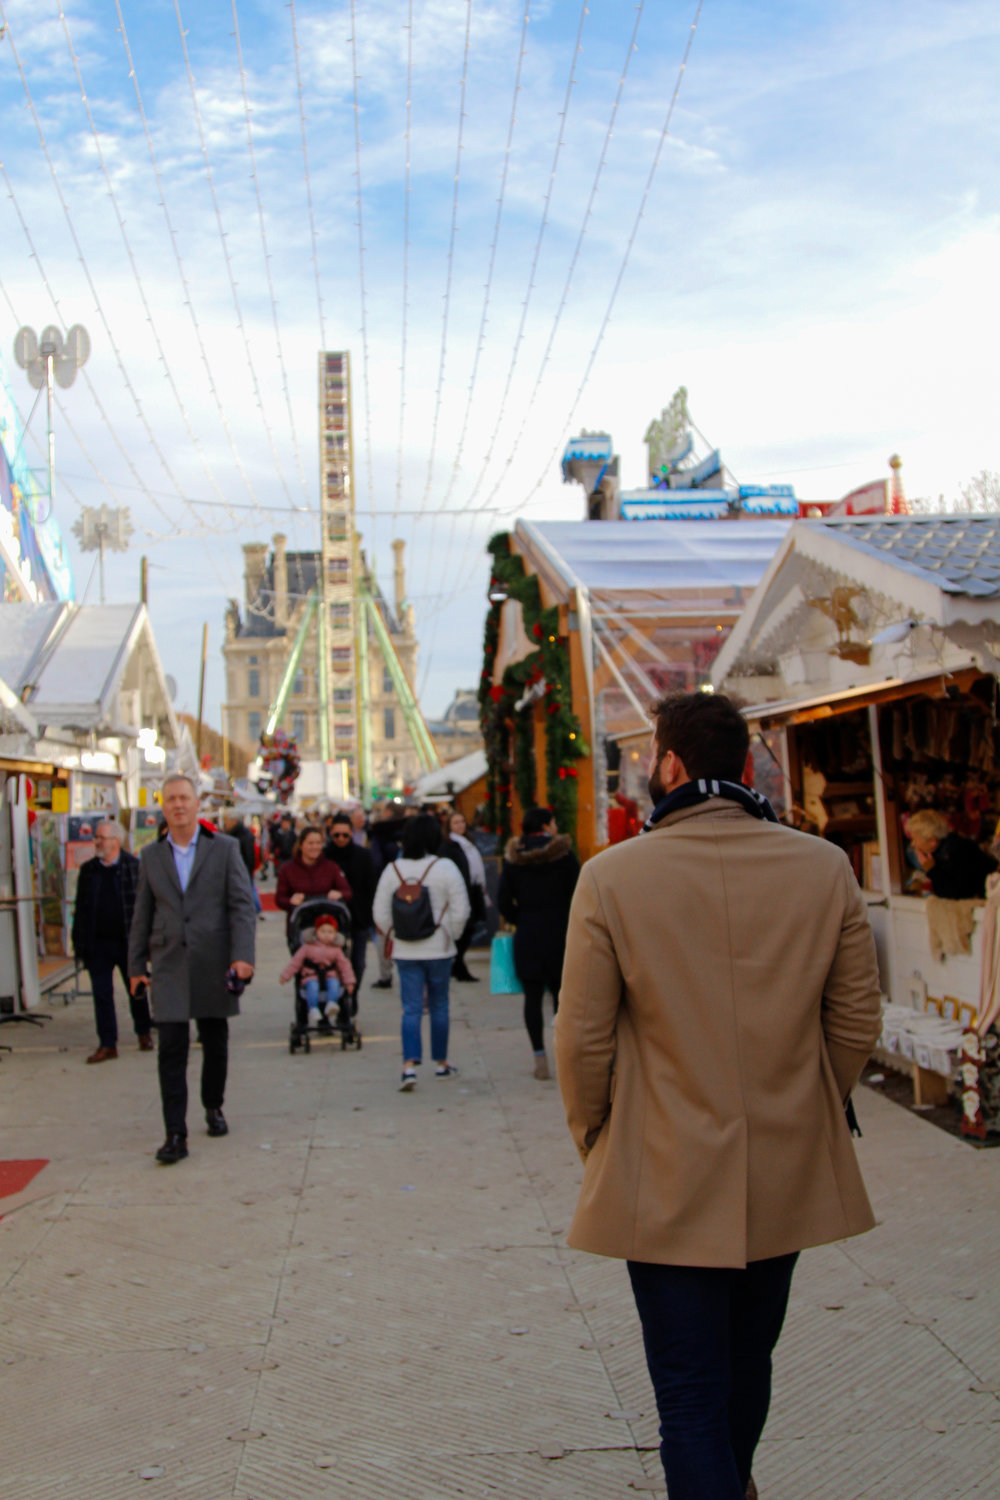 Christmas Market at Jardin des Tuileries